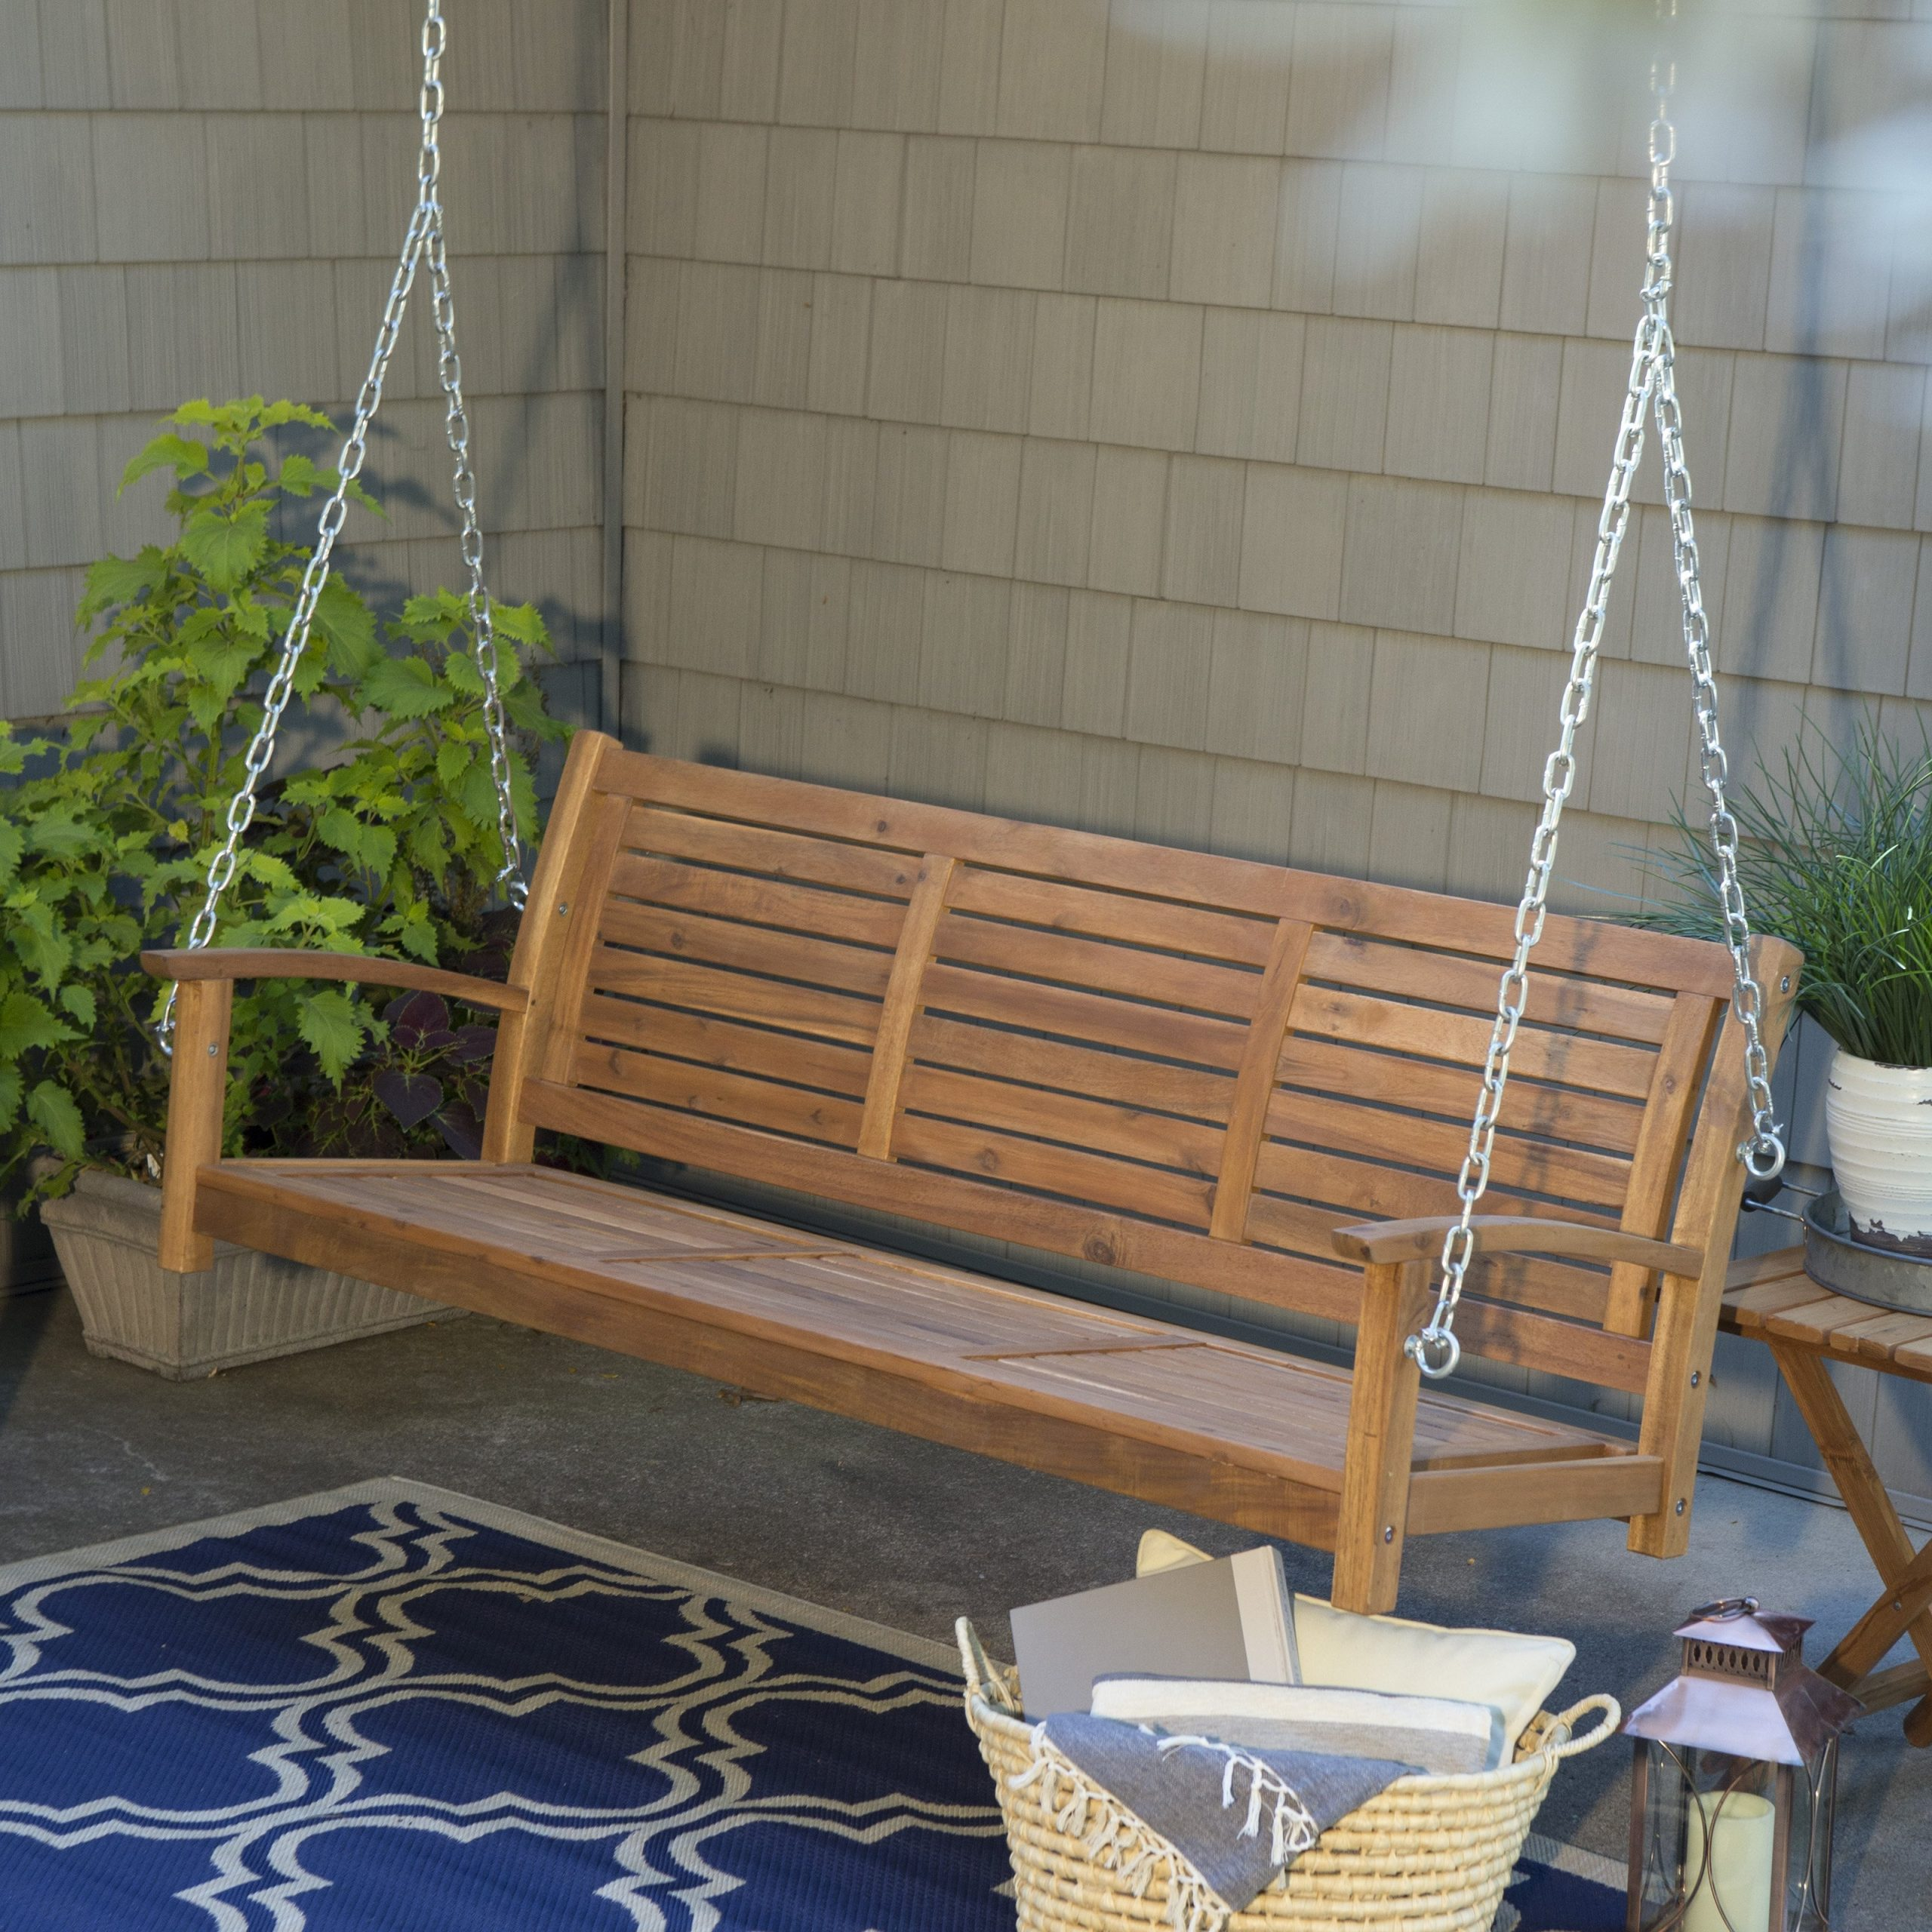 Best And Newest Hanging Chain For Porch Swing Pertaining To Porch Swings With Chain (View 14 of 26)